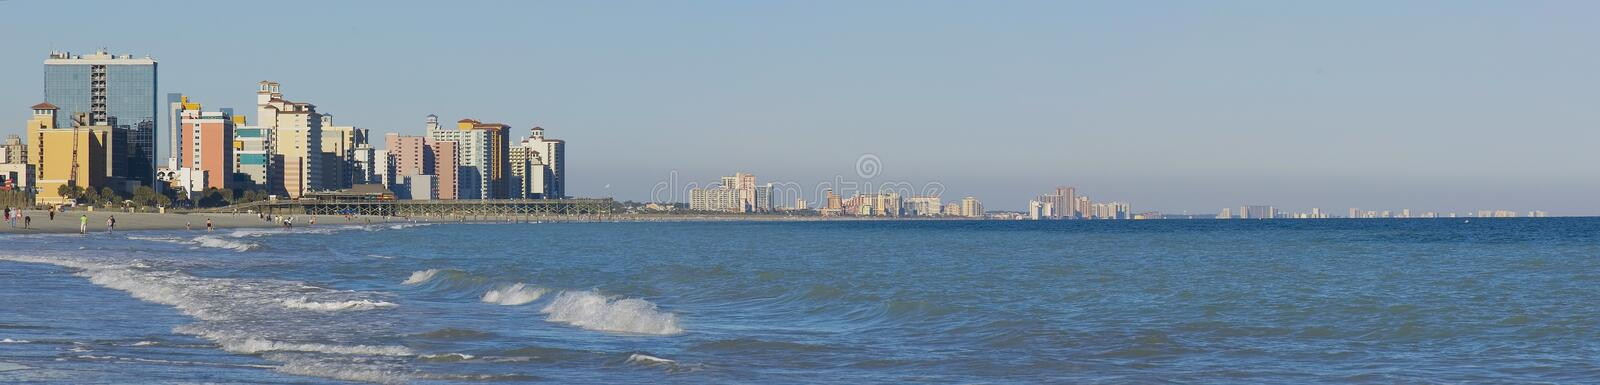 Panoramic view of Myrtle Beach. Coast in South Carolina royalty free stock photo